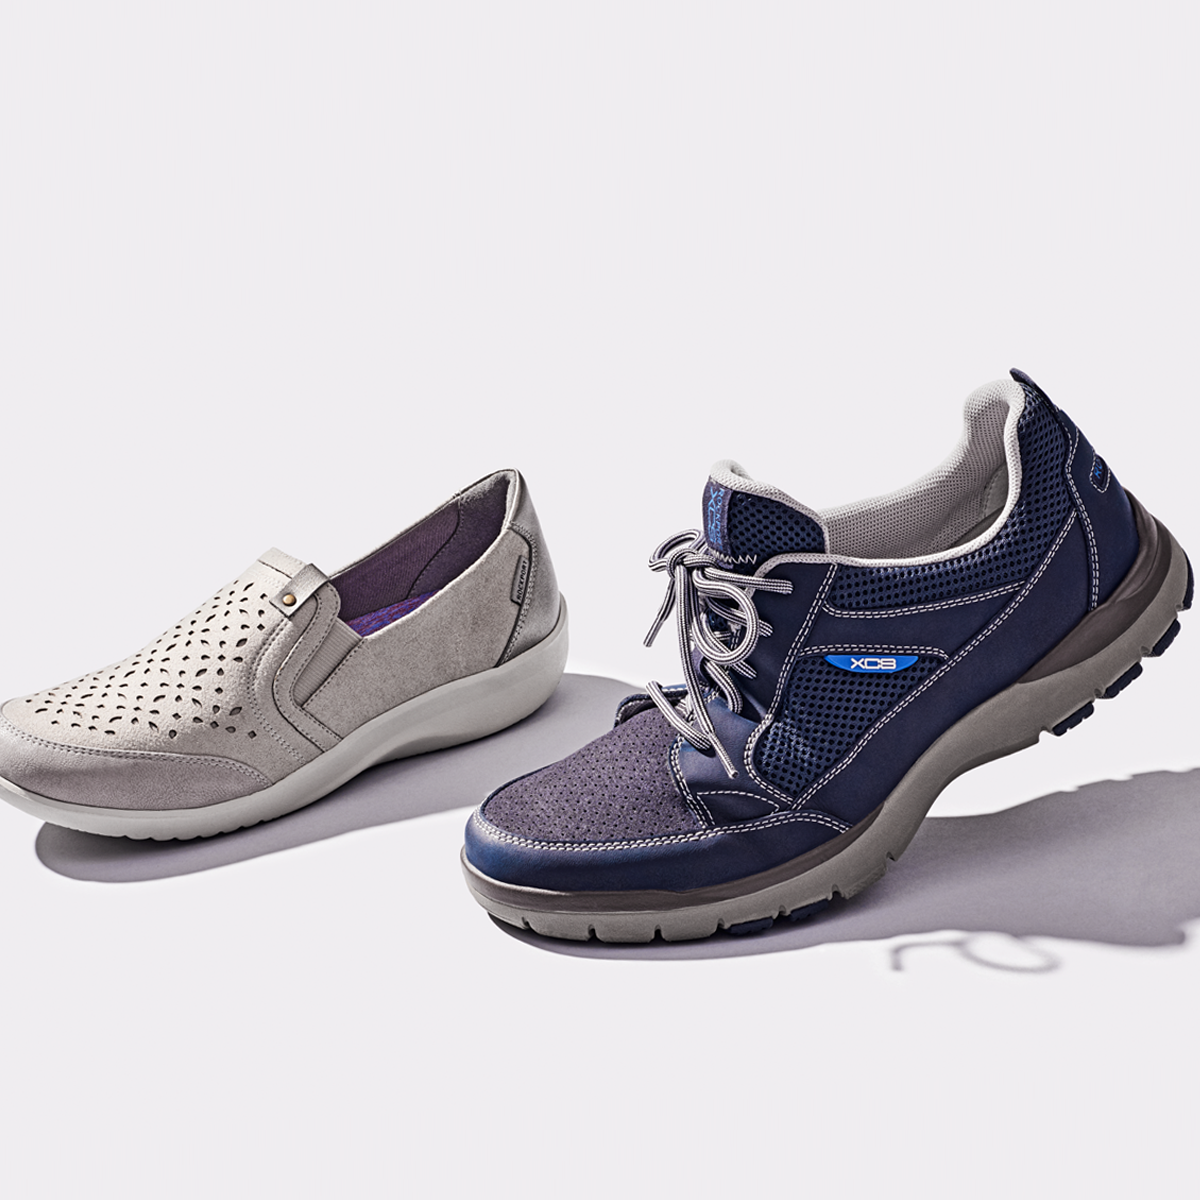 Get a move on with active shoes